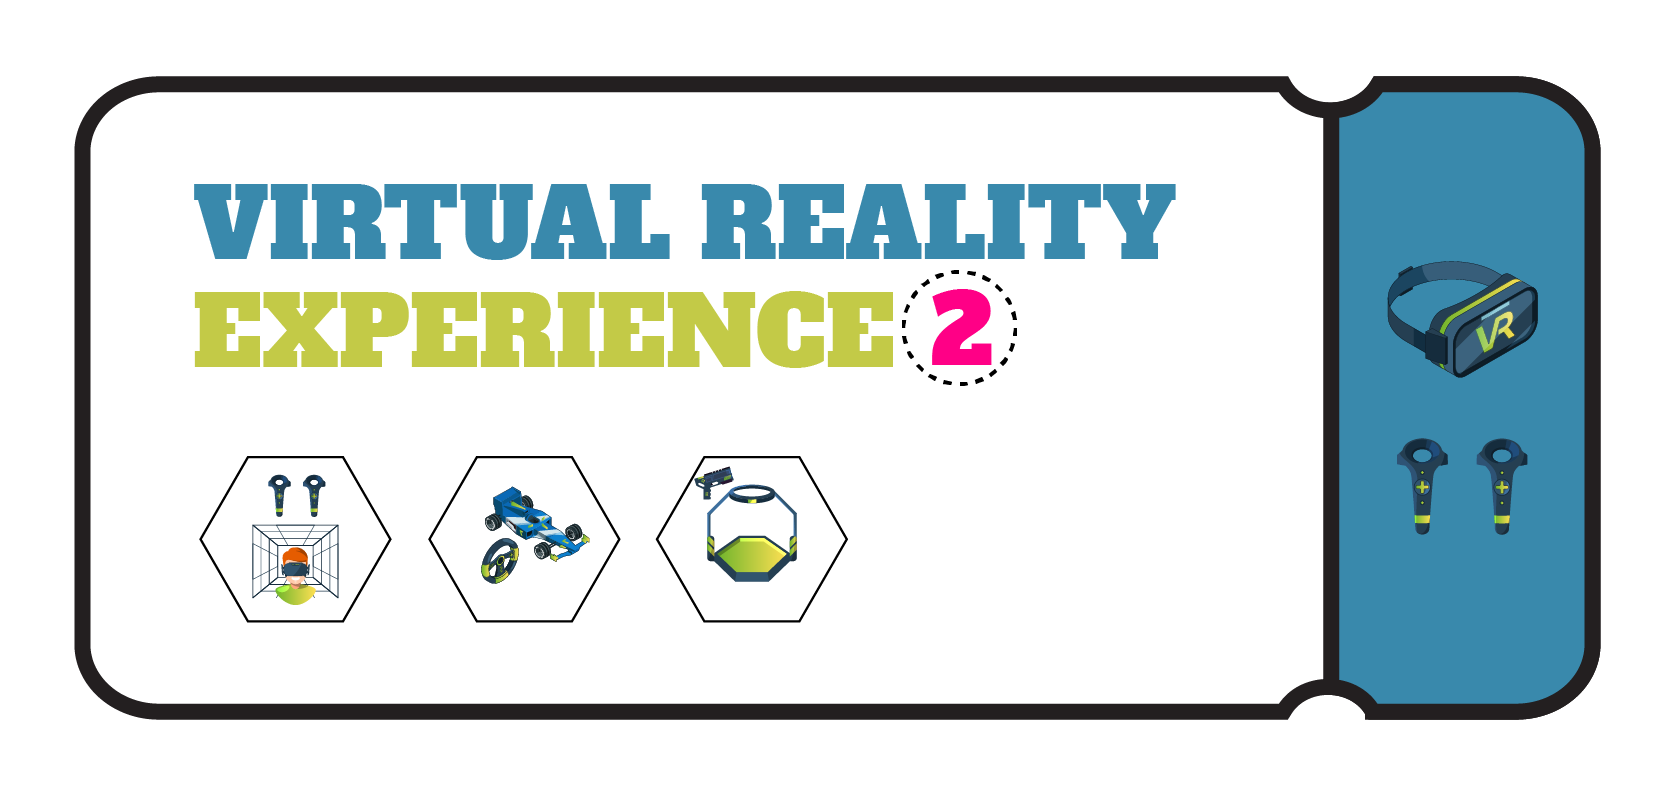 Jumpskillz Virtual Reality Experience 2 Purmerend@4x